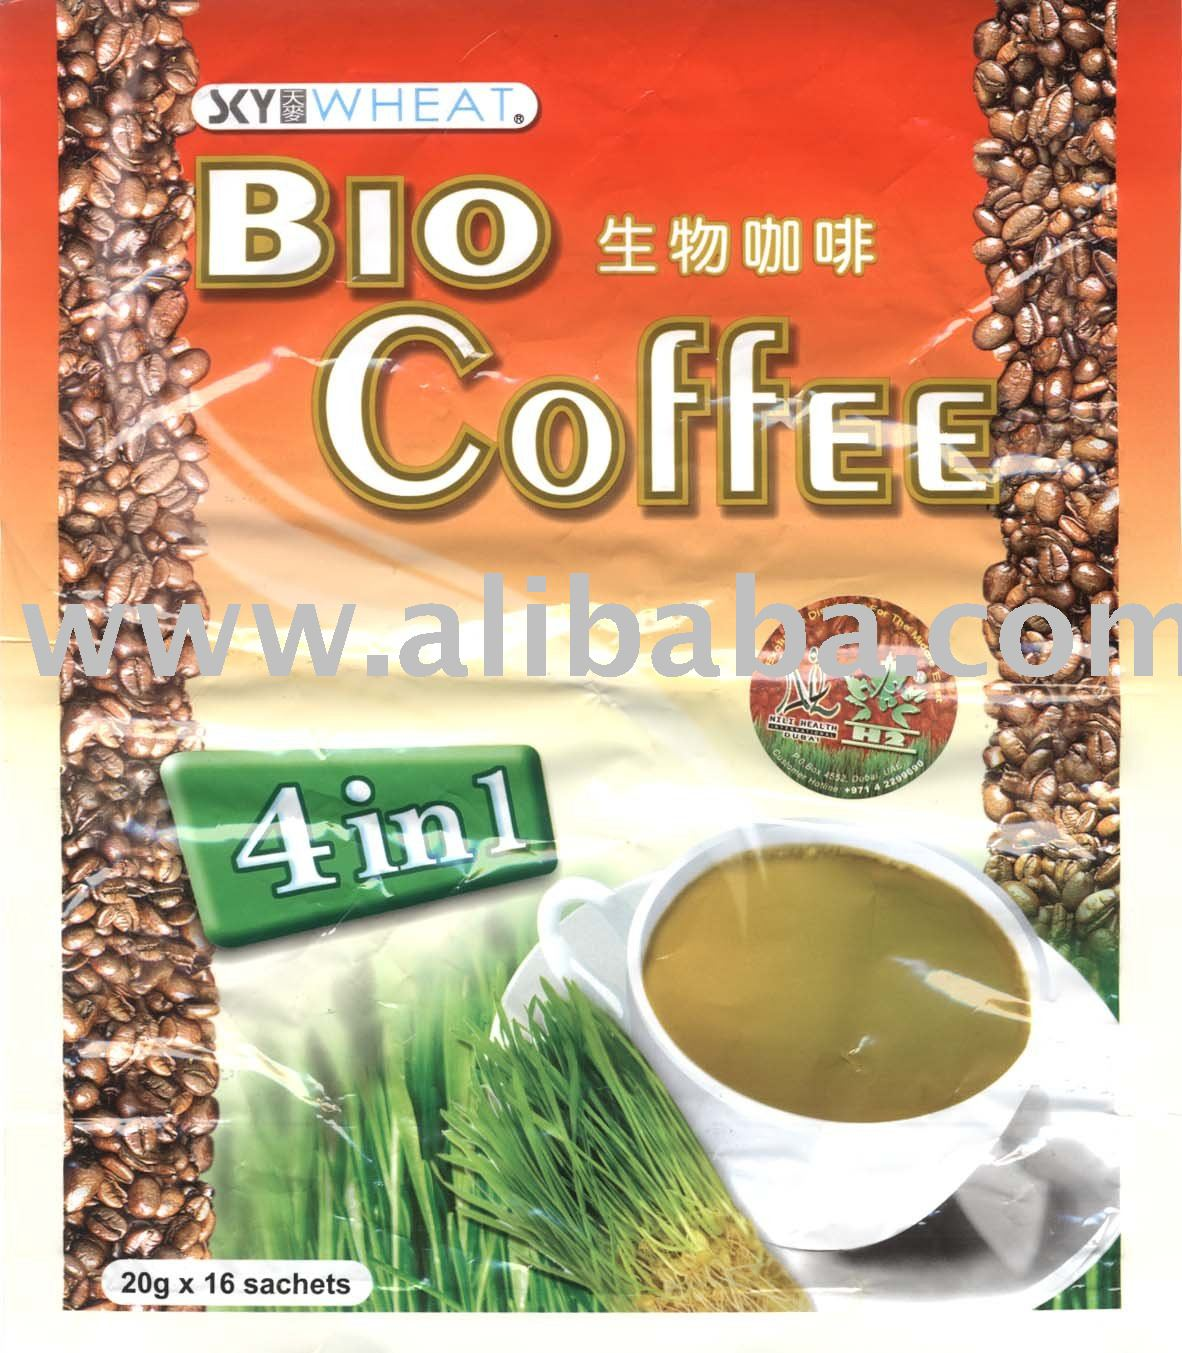 Sky Wheat Bio Coffee